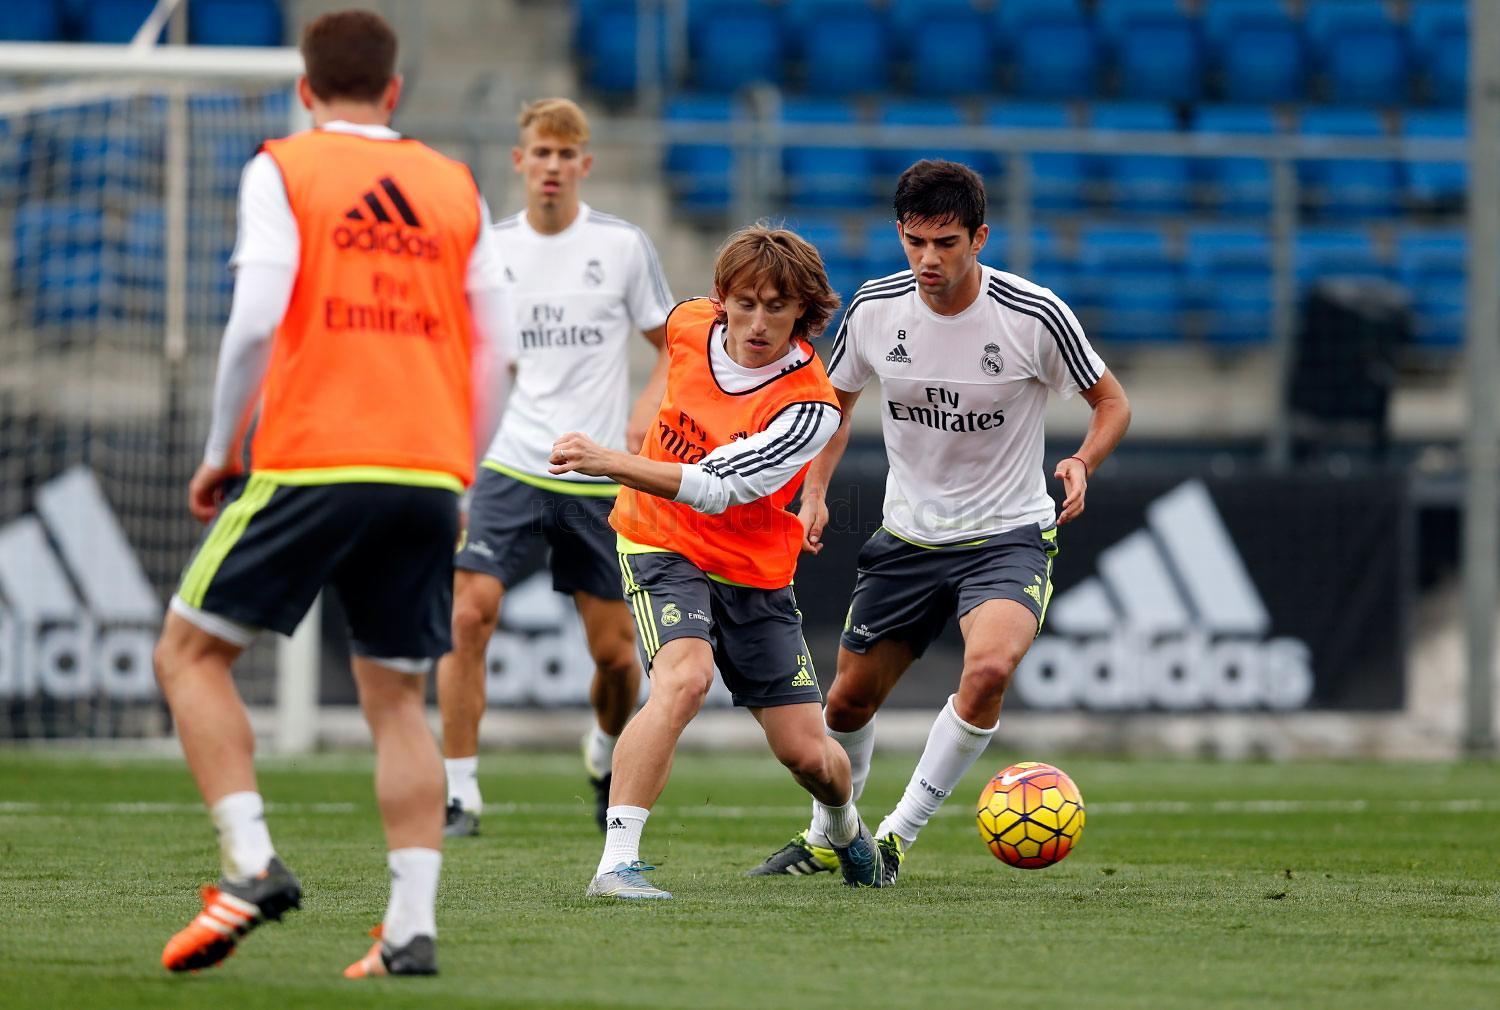 Real Madrid - Entrenamiento del Real Madrid - 27-10-2015